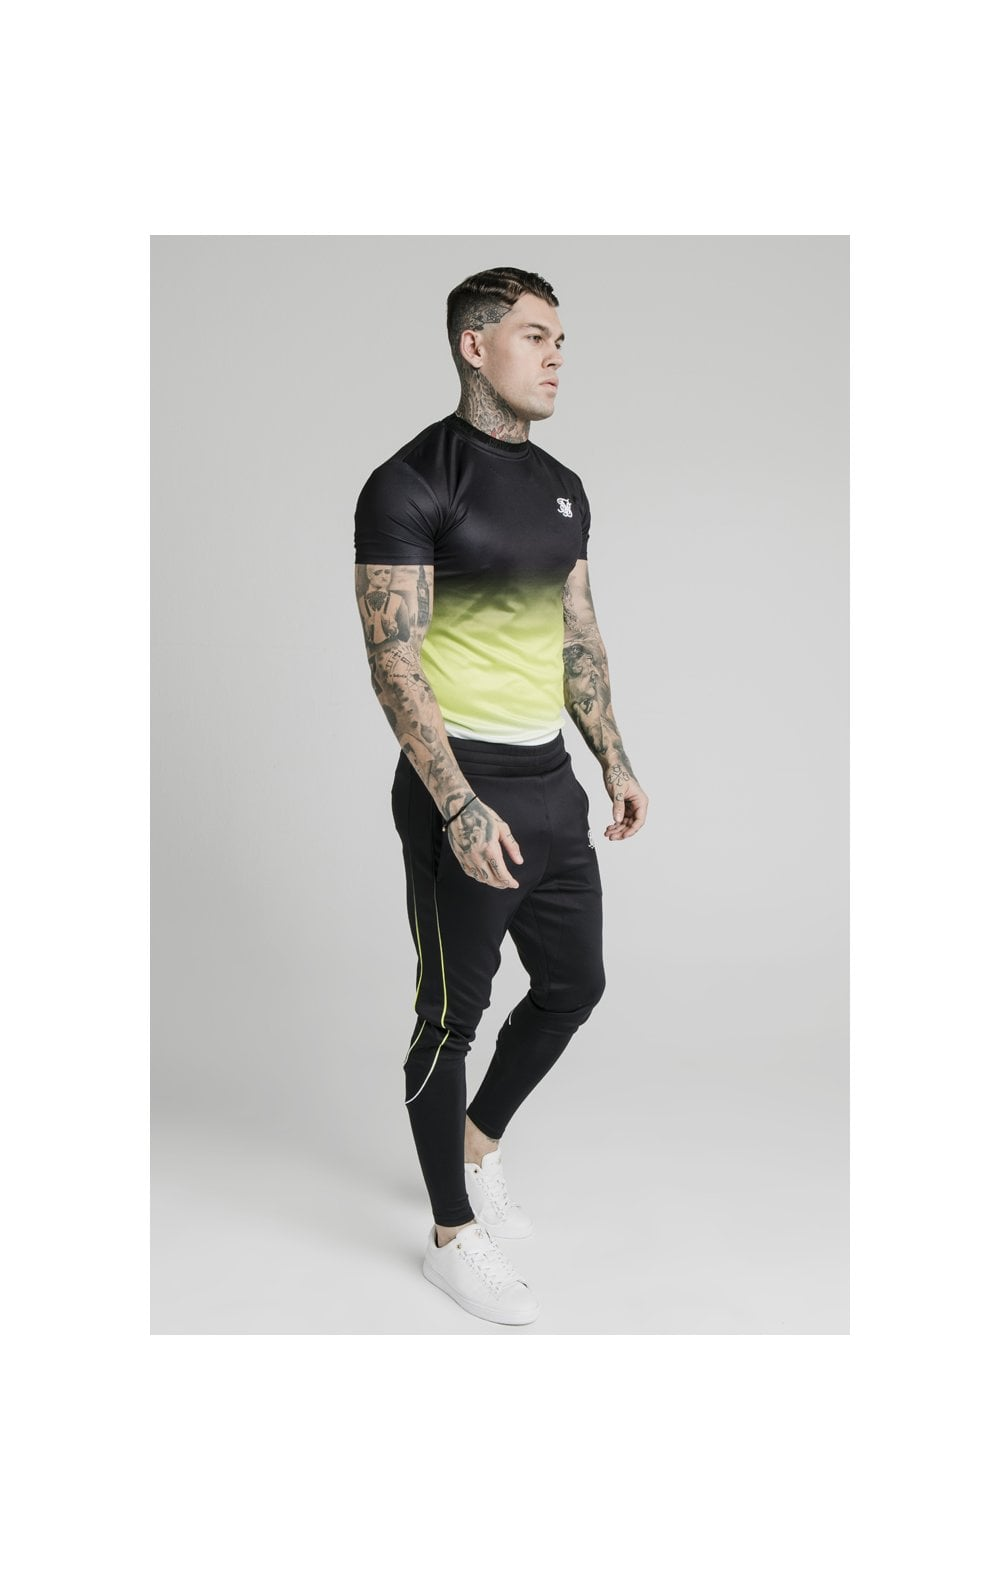 Load image into Gallery viewer, SikSilk Tri Fade Tape Track Pants - Black, Fluro & White (6)